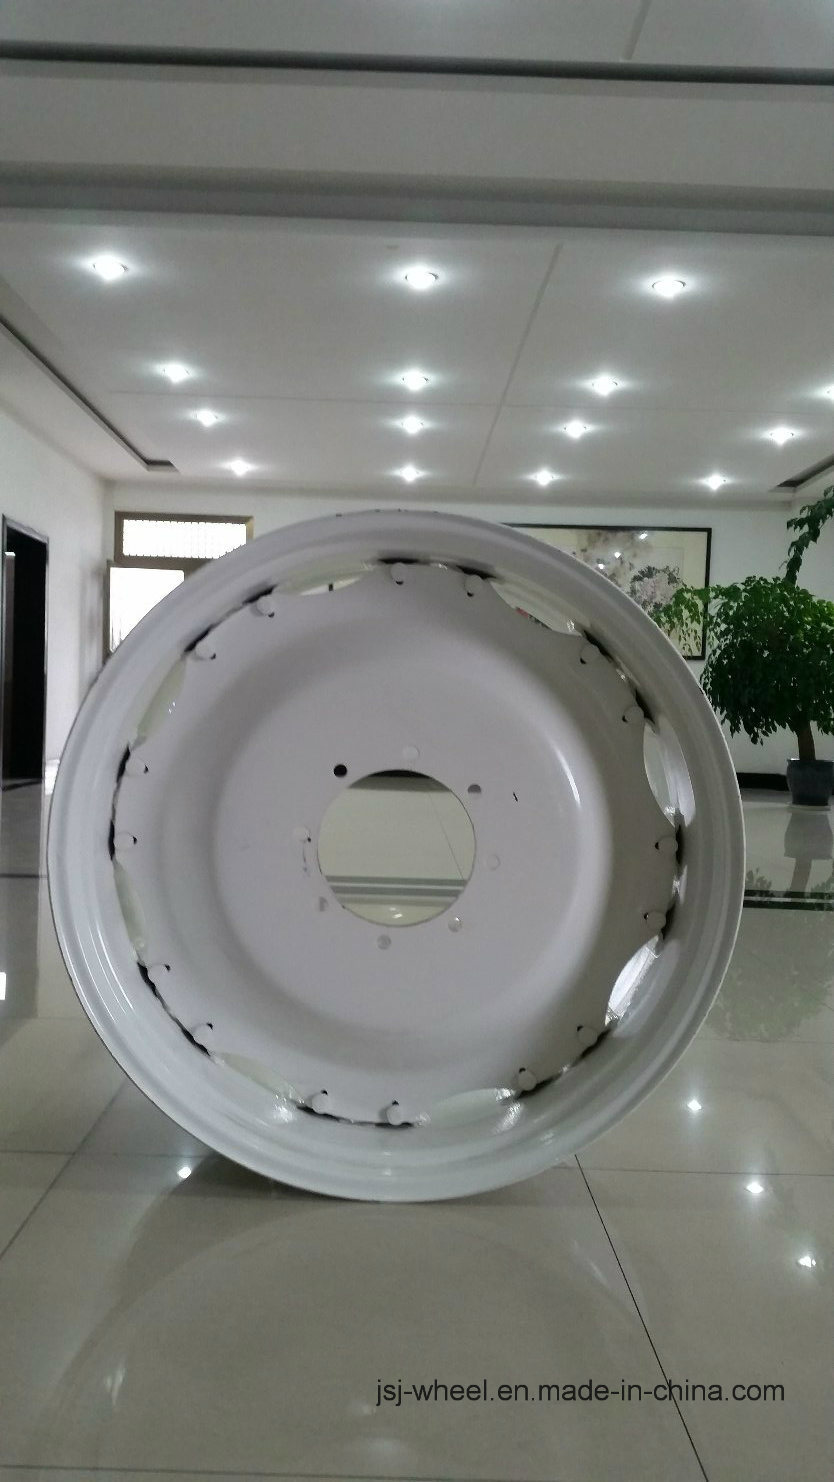 Wheel Rims for Tractor/Harvest/Machineshop Truck/Irrigation System-3